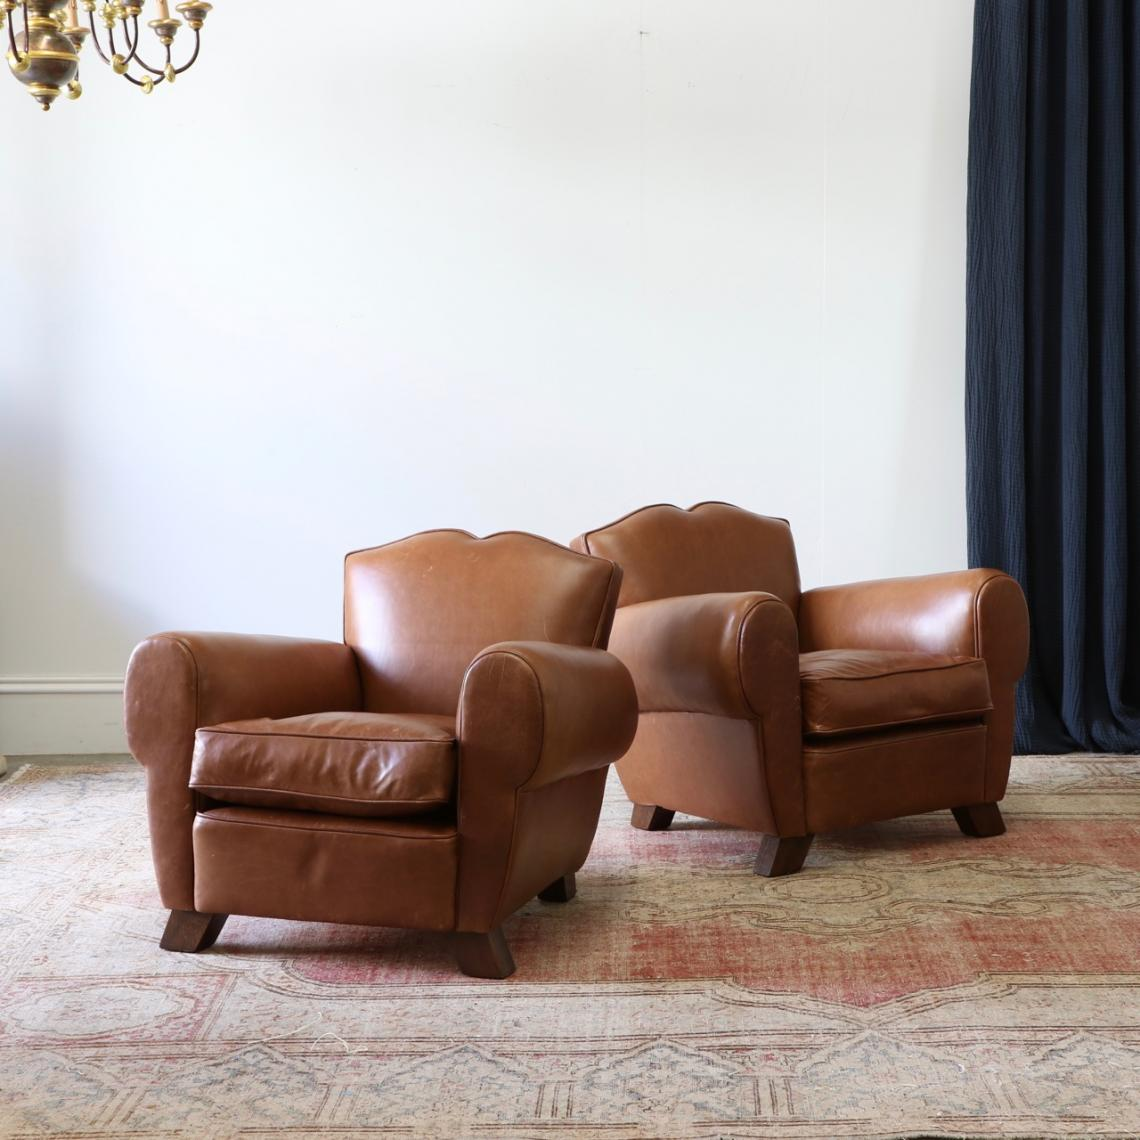 116-84 - Pair of Leather Armchairs